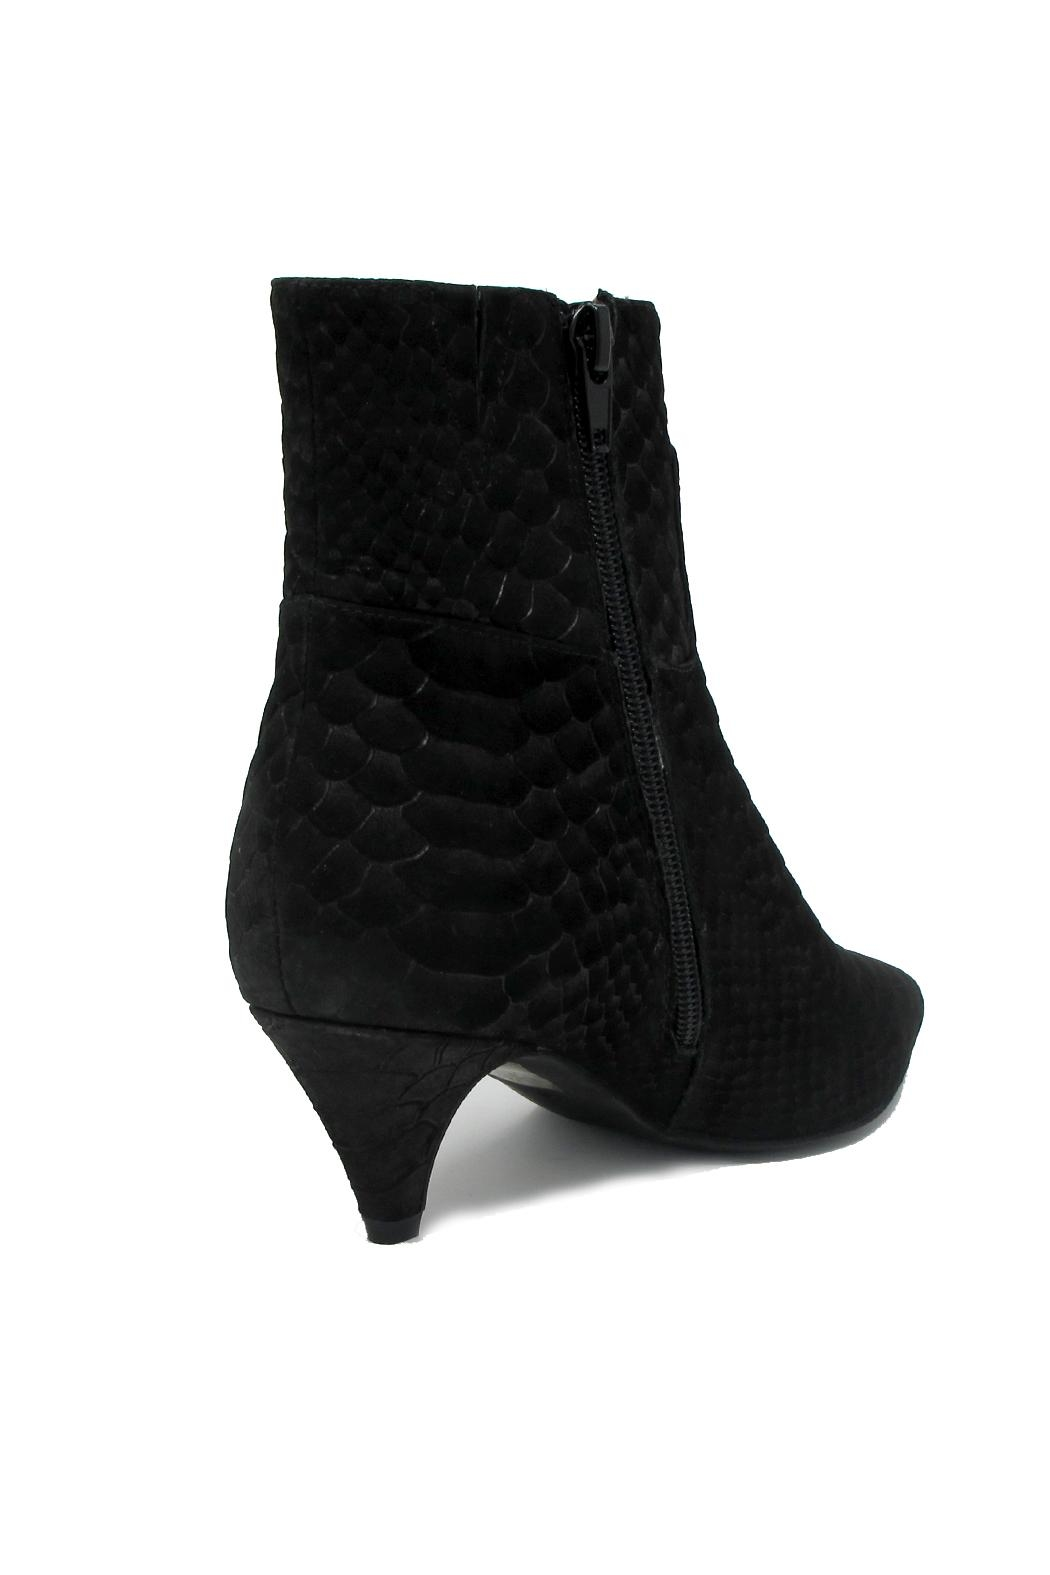 Jeffrey Campbell Black Snake Bootie - Front Full Image